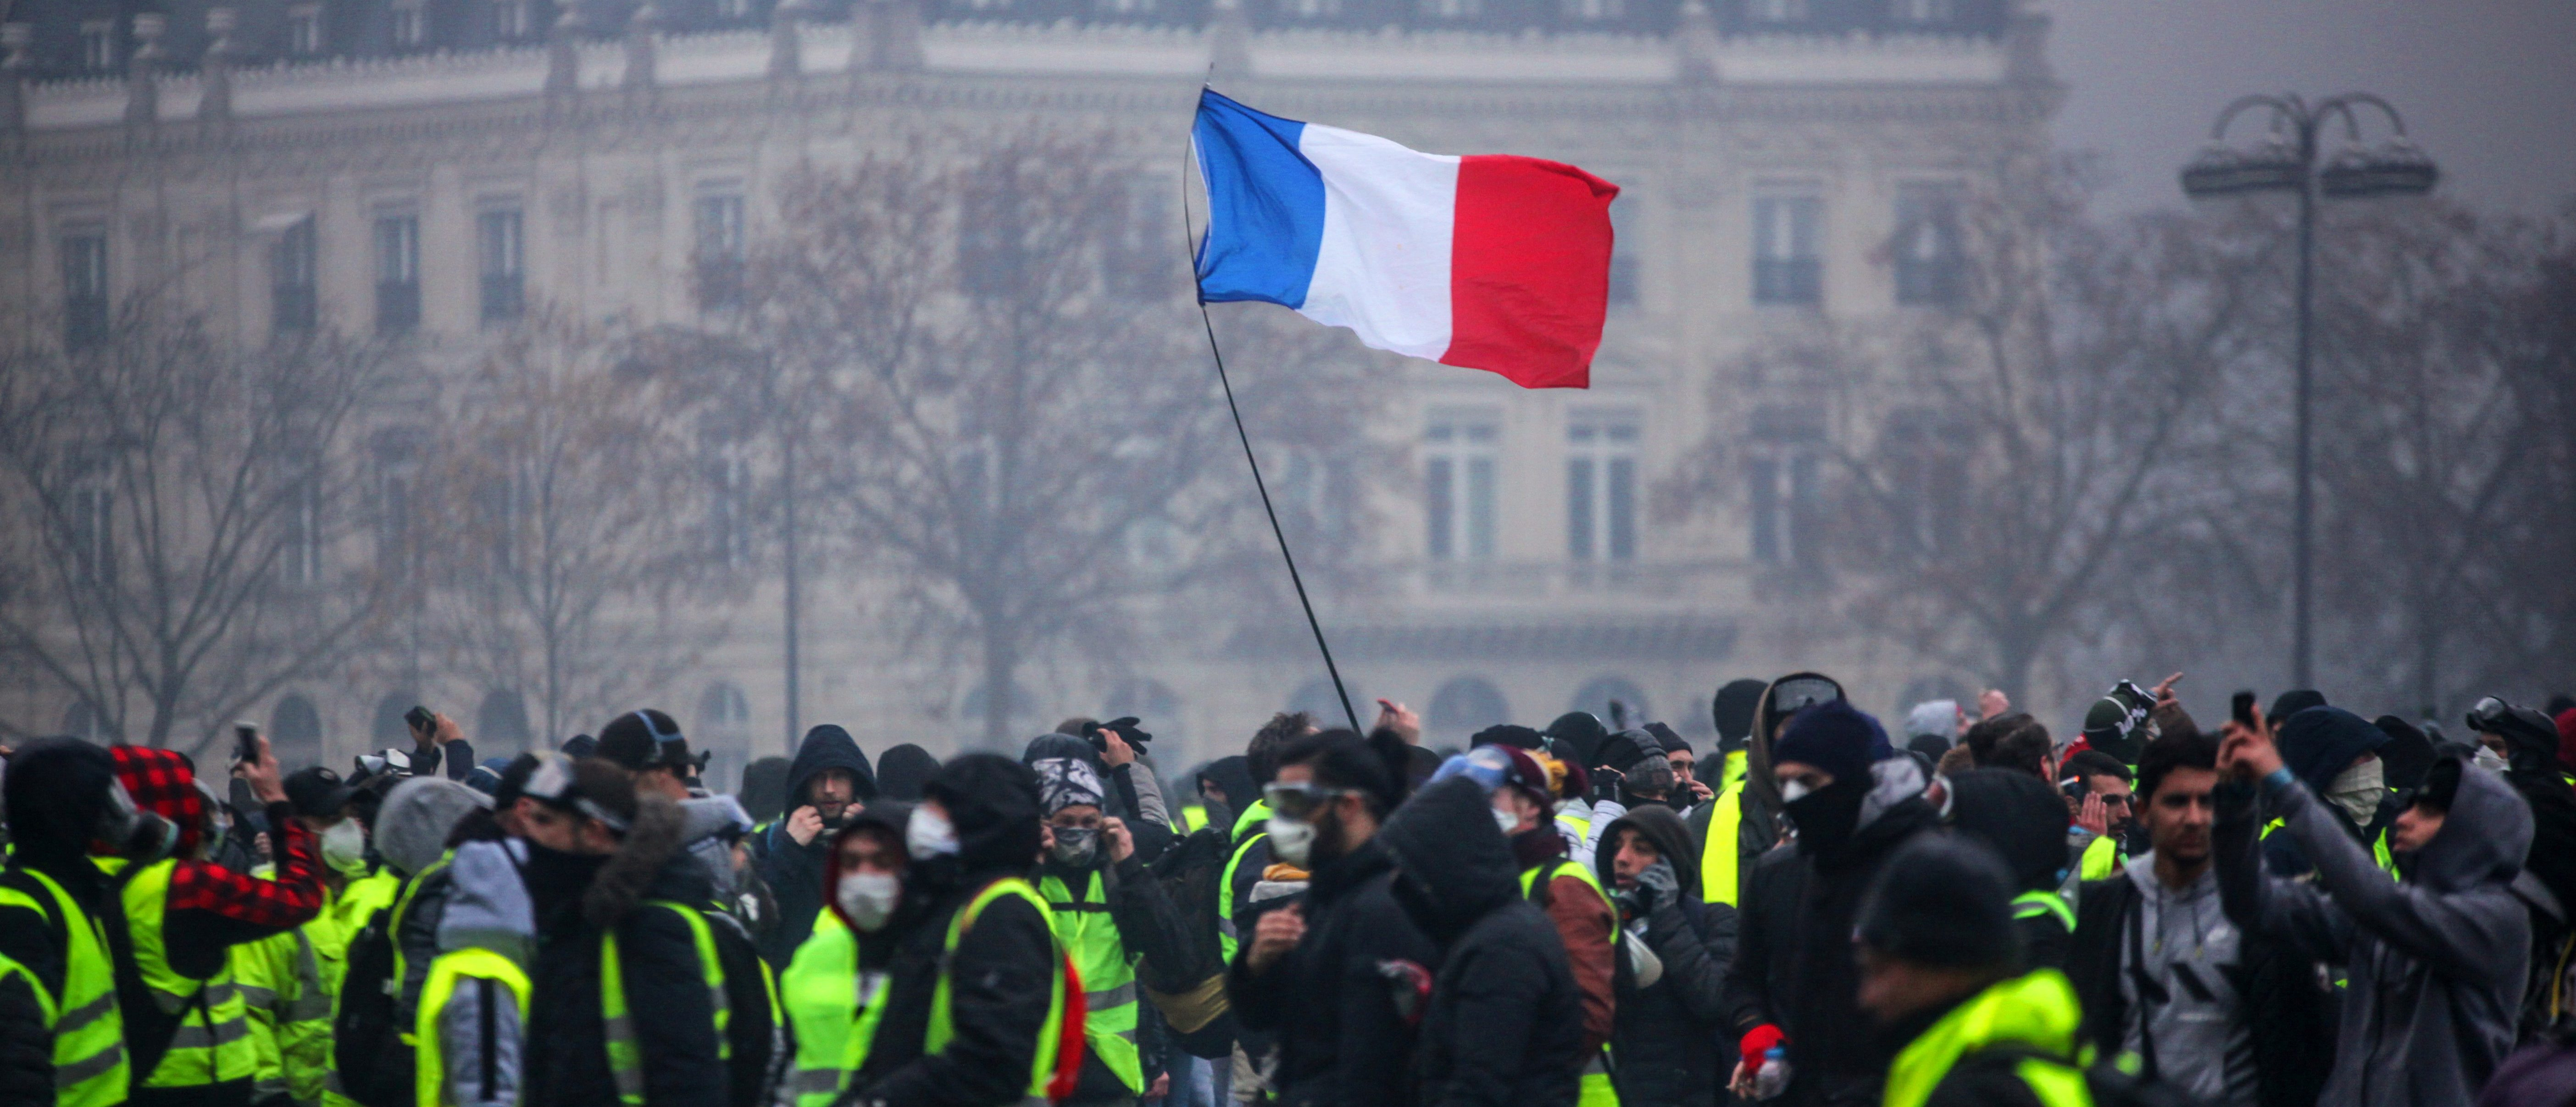 "TOPSHOT - Demonstrators gather near the Arc de Triomphe as a French flag floats during a protest of Yellow vests (Gilets jaunes) against rising oil prices and living costs, on December 1, 2018 in Paris. - Anti-government protesters torched dozens of cars and set fire to storefronts during daylong clashes with riot police across central Paris on December 1, as thousands took part in fresh ""yellow vest"" protests against high fuel taxes. (Photo by - / AFP) (Photo credit should read -/AFP/Getty Images)"